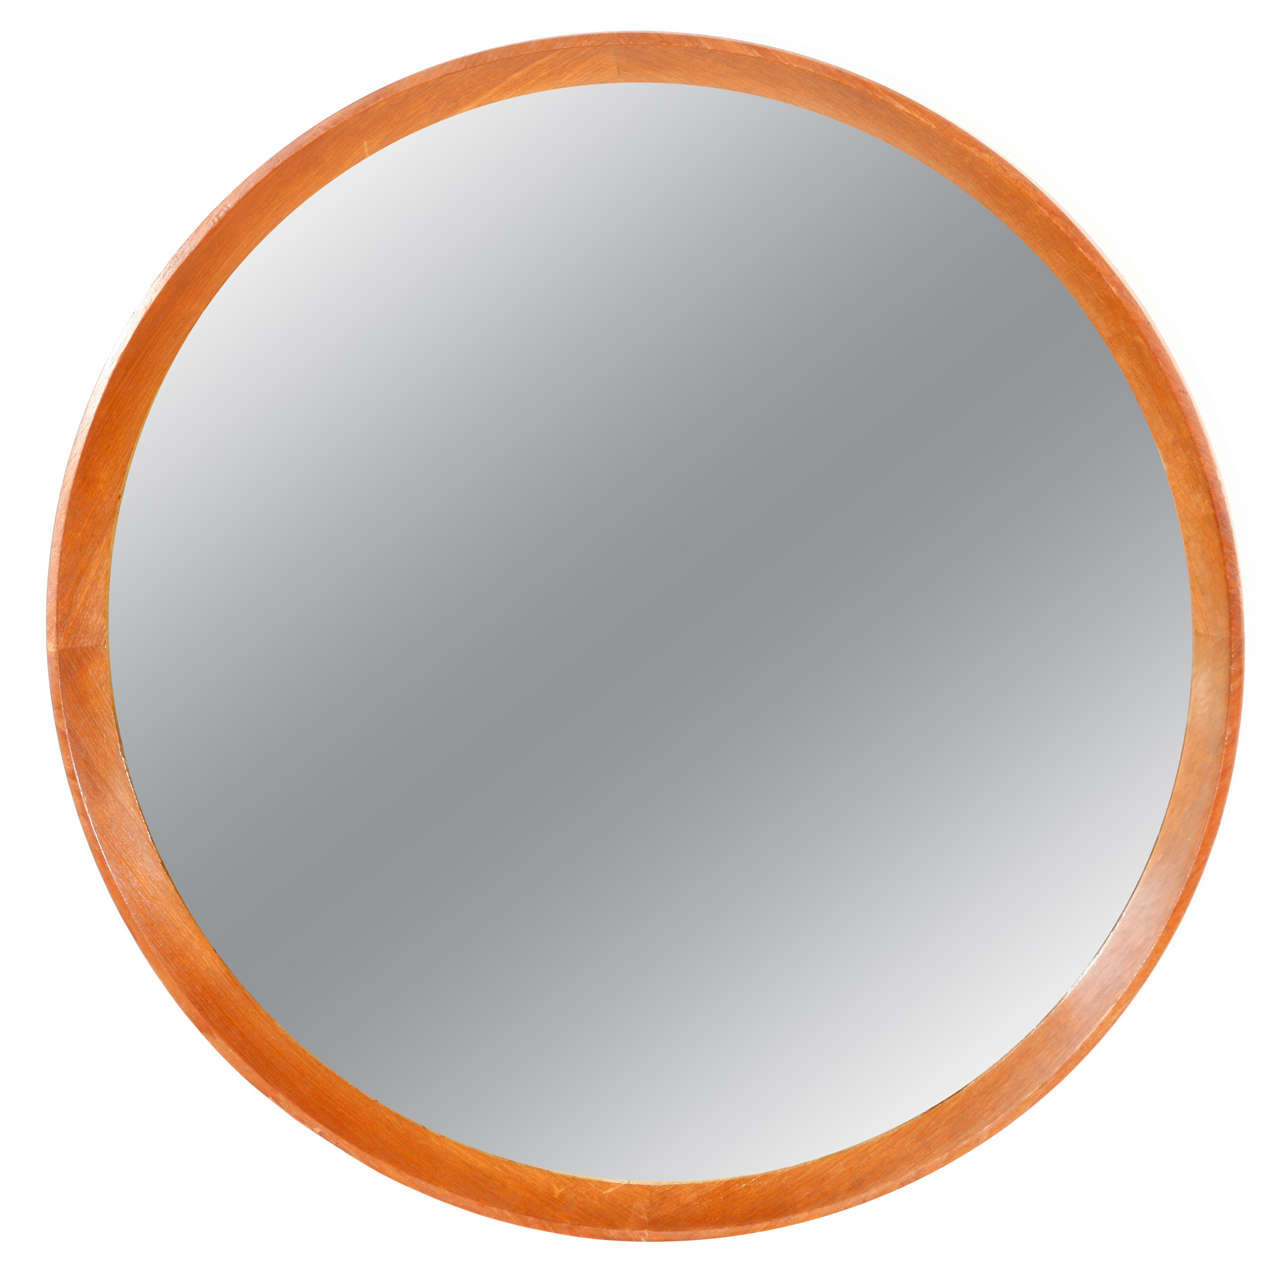 This italian circular wooden wall mirror is no longer available - Italian Wood Framed Round Wall Mirror Large 1